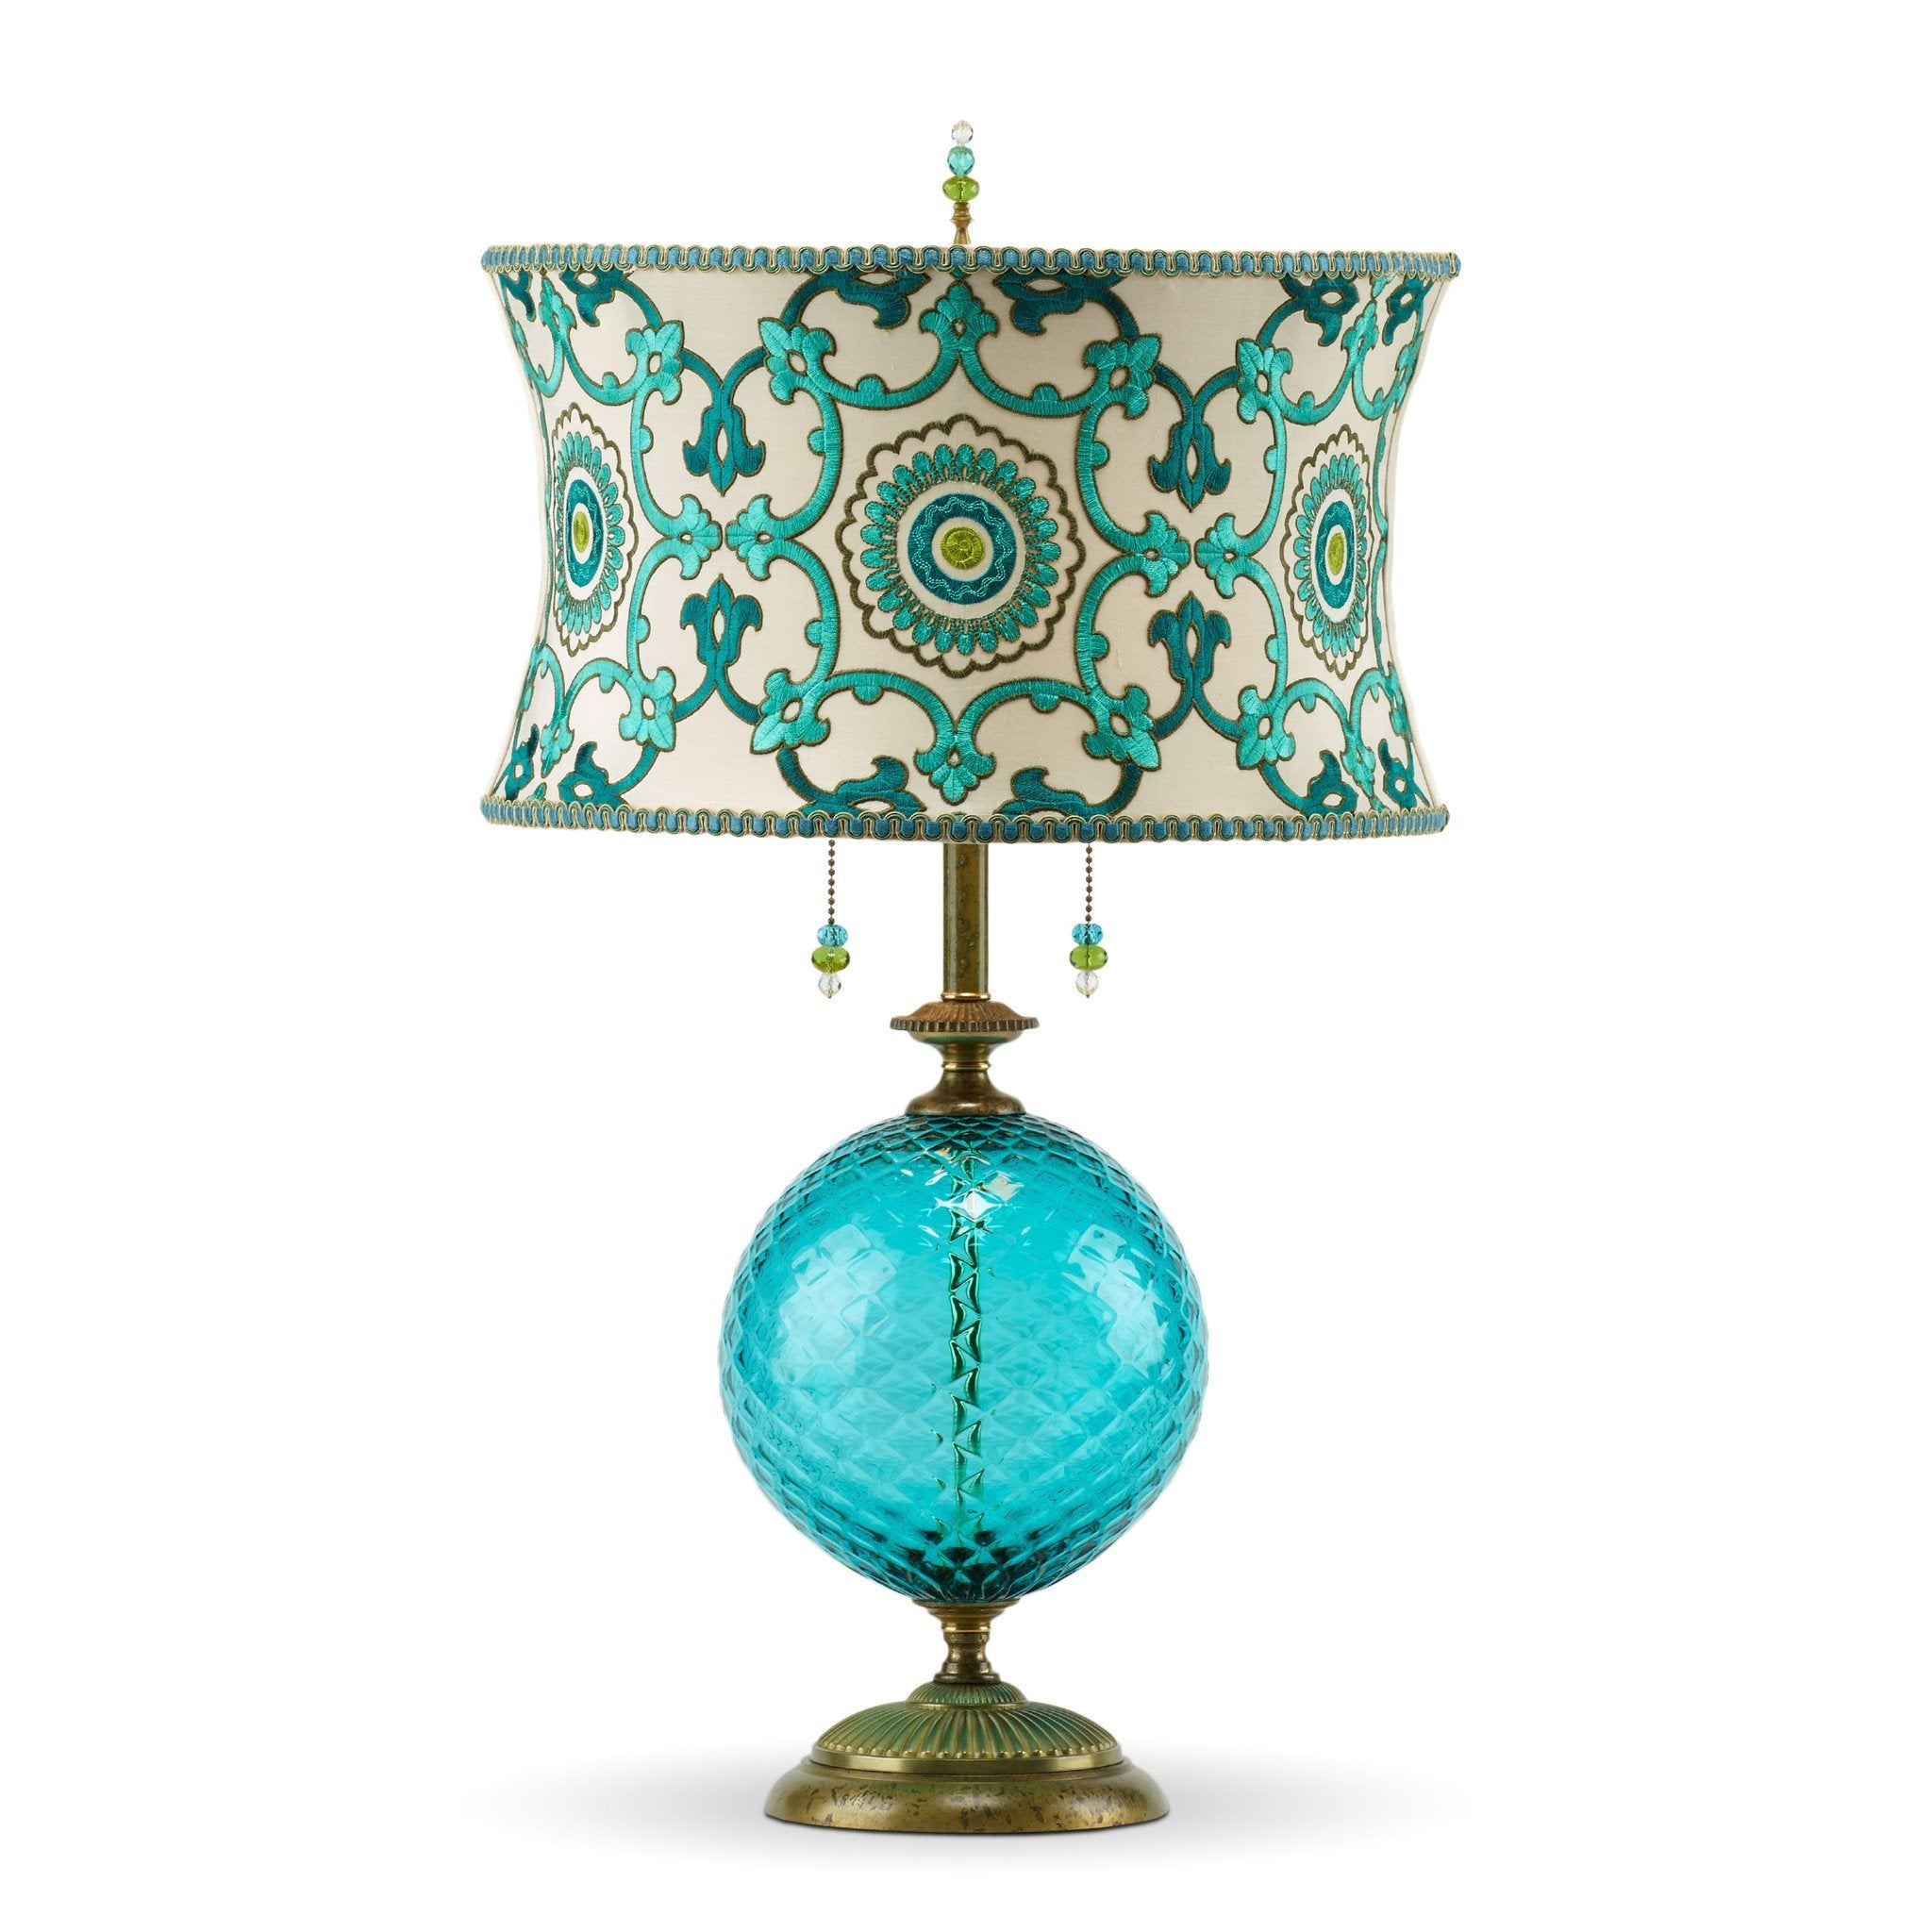 Kinzig design ingrid table lamp 129 k 117 colors turquoise blown kinzig design ingrid table lamp 129 k 117 colors turquoise blown glass base with embroidered silk aloadofball Gallery